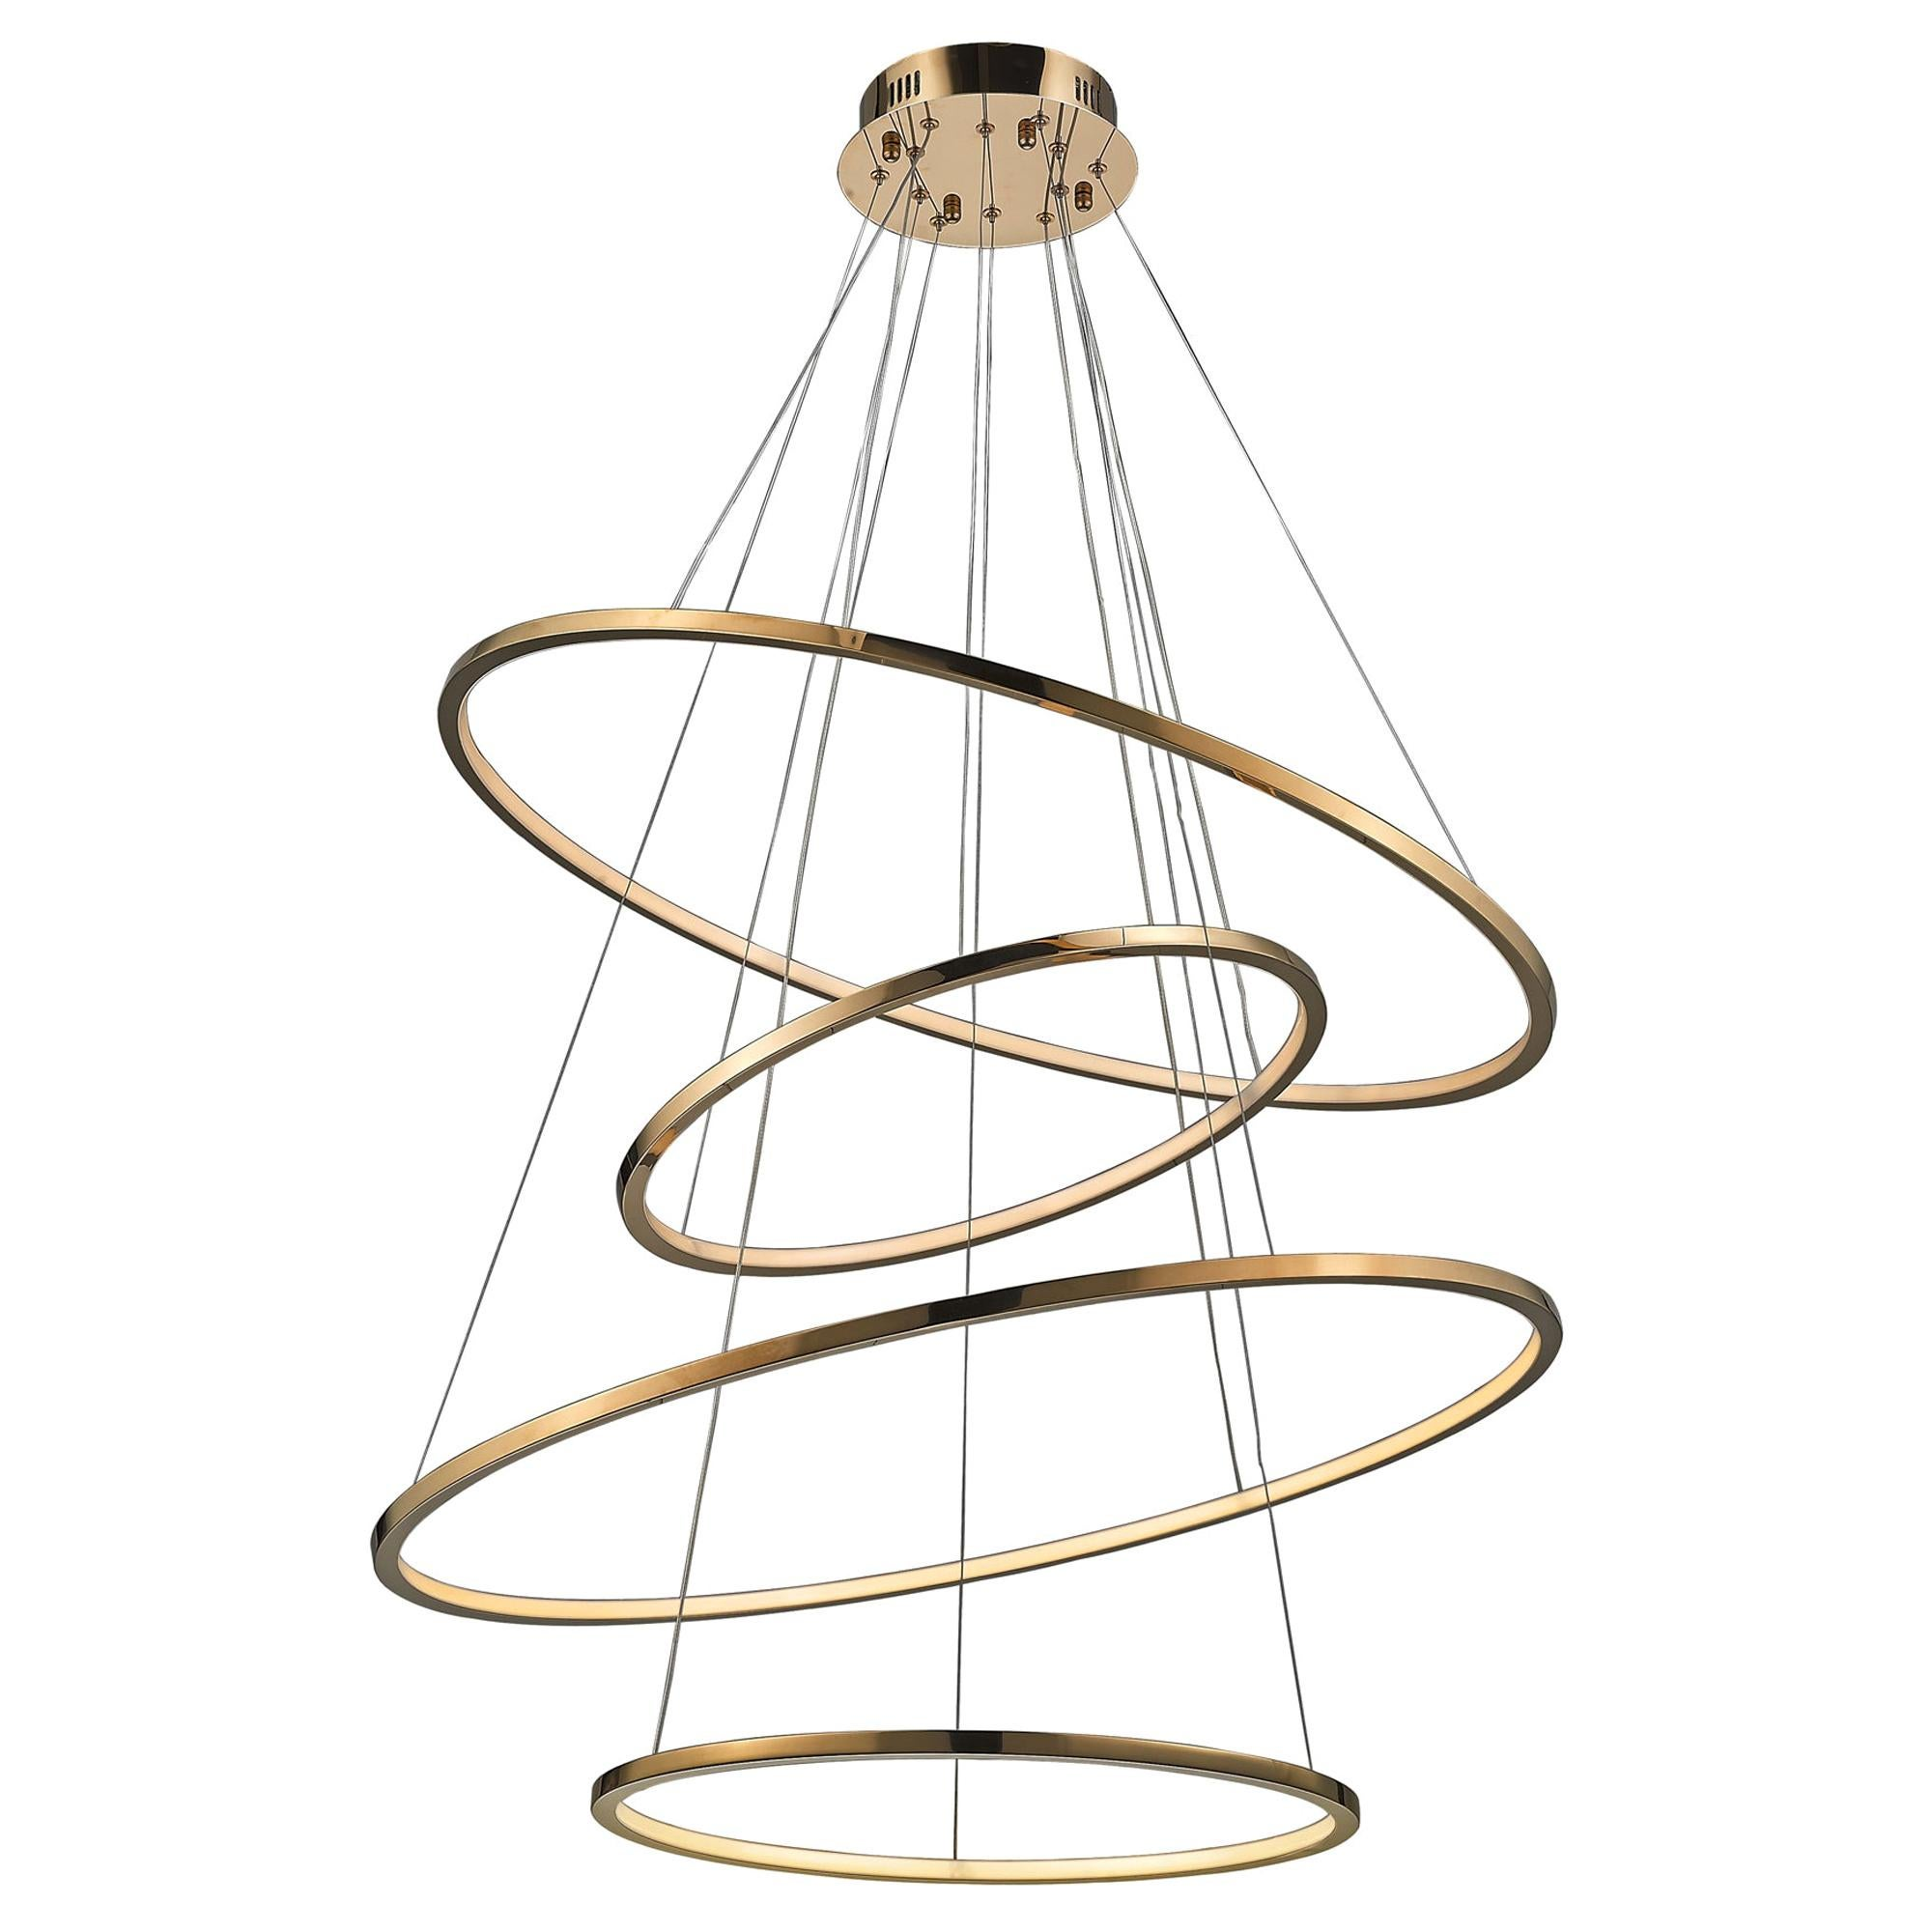 LED Swirl Four Ring Chandelier Pendant Light in Gold Contemporary